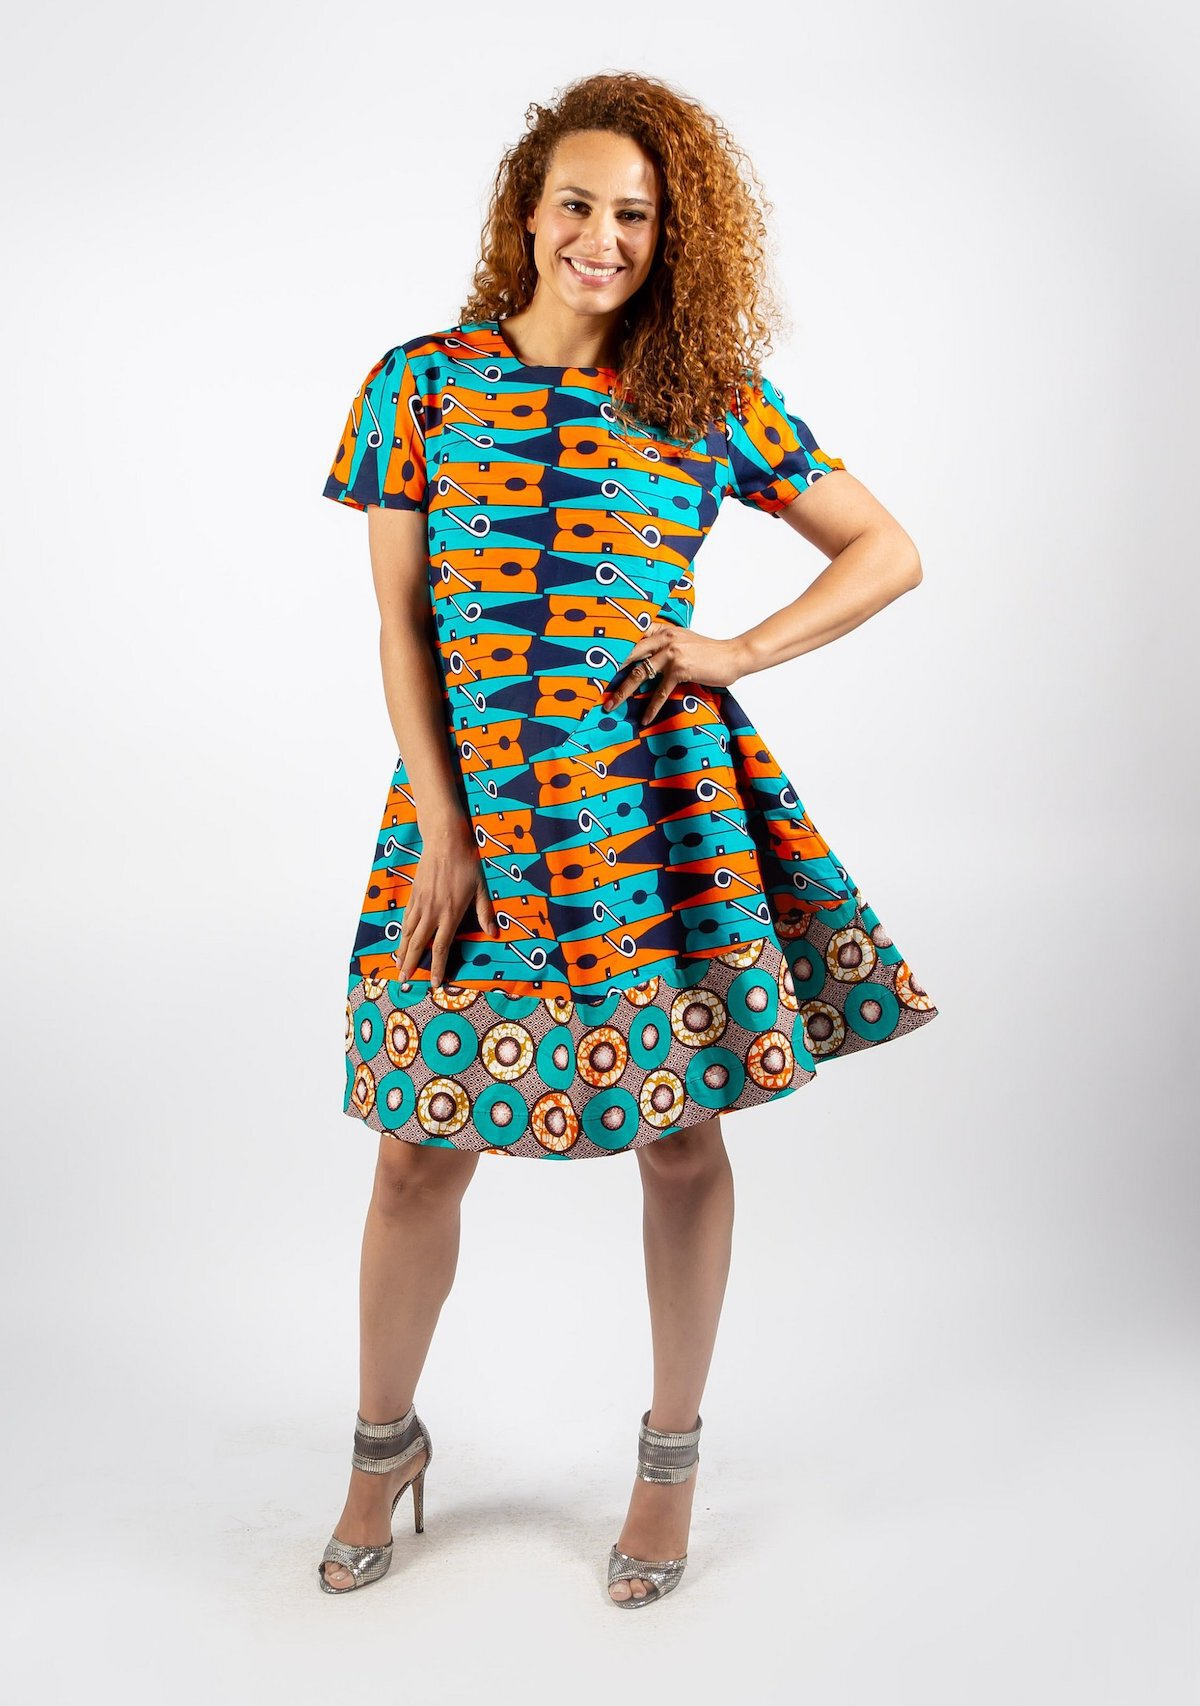 A roundup of the best African print dresses to add to your wardrobe this year. Wear these ankara dress styles to traditional weddings, prom dates, and religious ceremonies. Get details about each African attire to nail your African print fashion today. Click to see all! All about ankara Dutch wax, Kente, Kitenge, Dashiki. Africa fashion, African wear, African clothing. #africanprint #ankarastyles #africanfashion